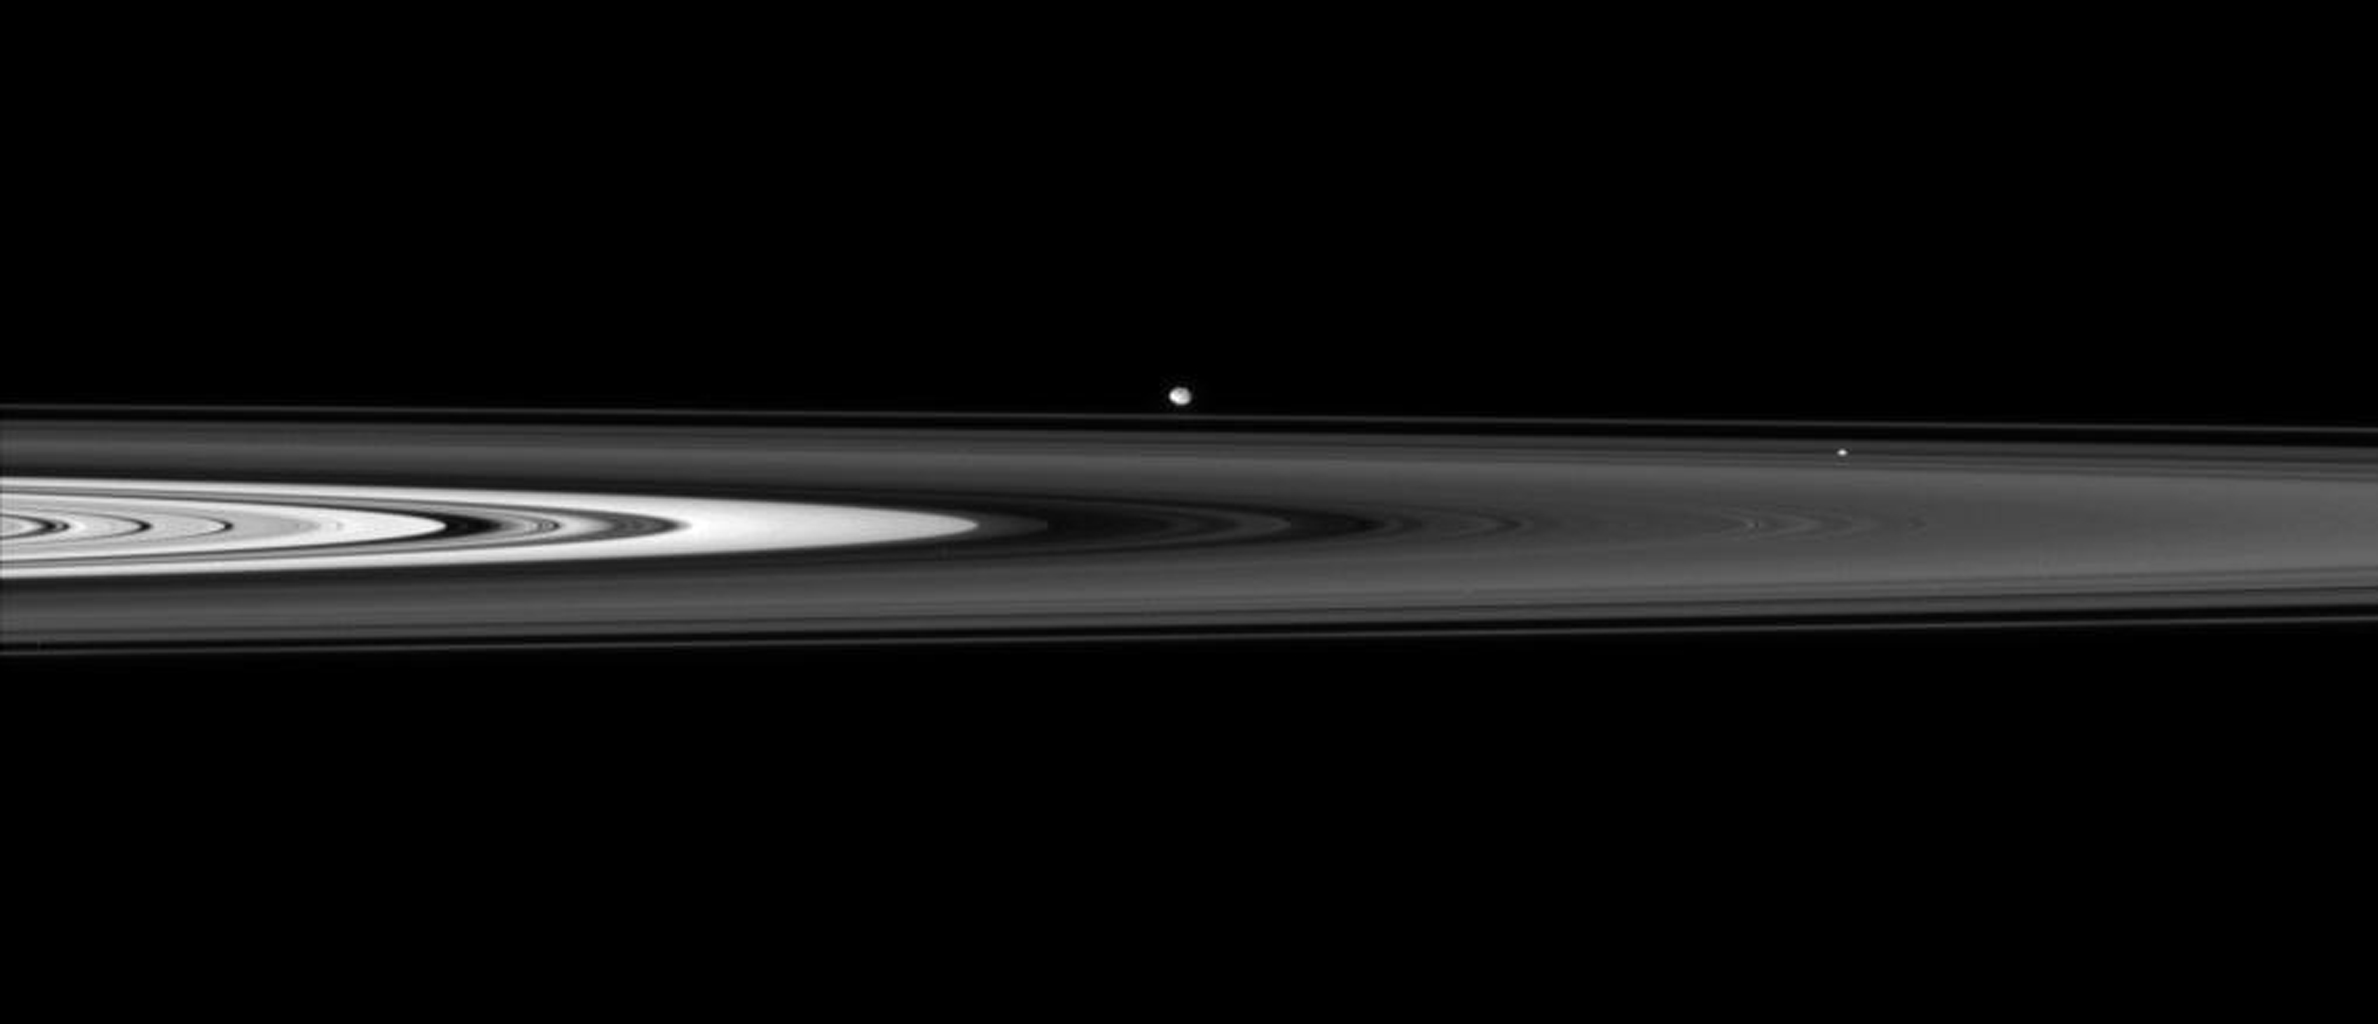 NASA's Cassini spacecraft skims past Saturn's ringplane at a low angle, spotting two ring moons on the far side.